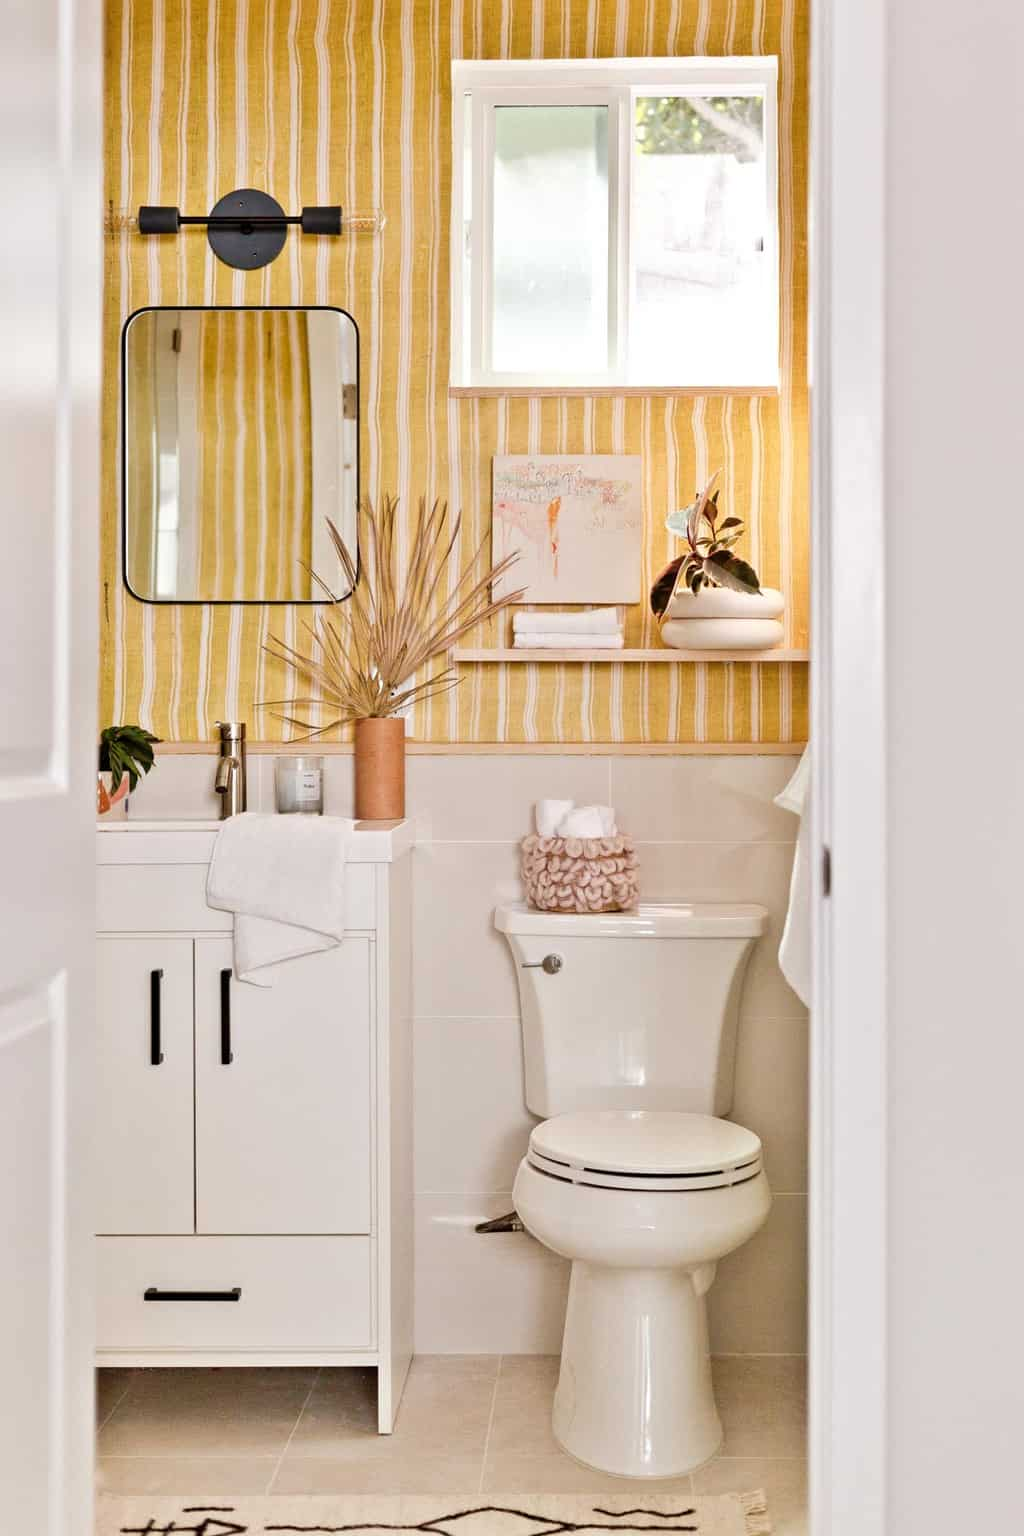 Yellow striped bathroom with white vanity and black, modern accents.